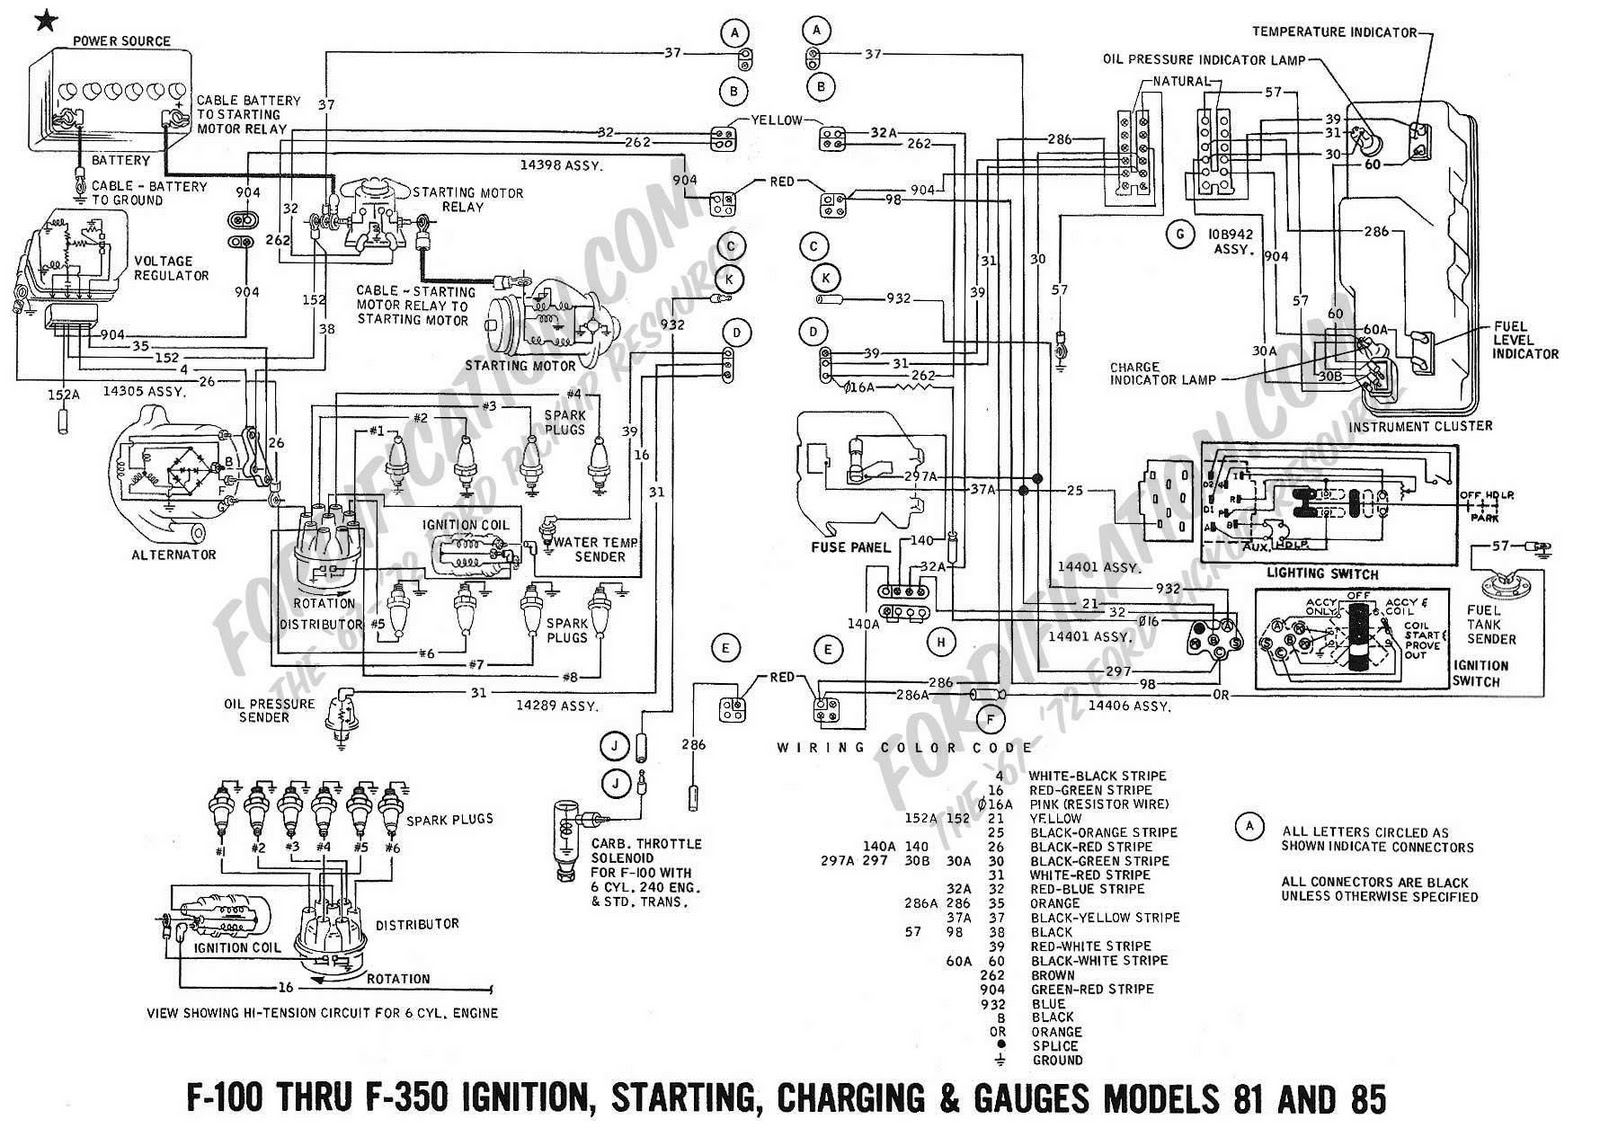 1977 ford ltd wiring diagram wiring diagram schematics ford pinto engine  swap 1968 galaxie wiring diagram